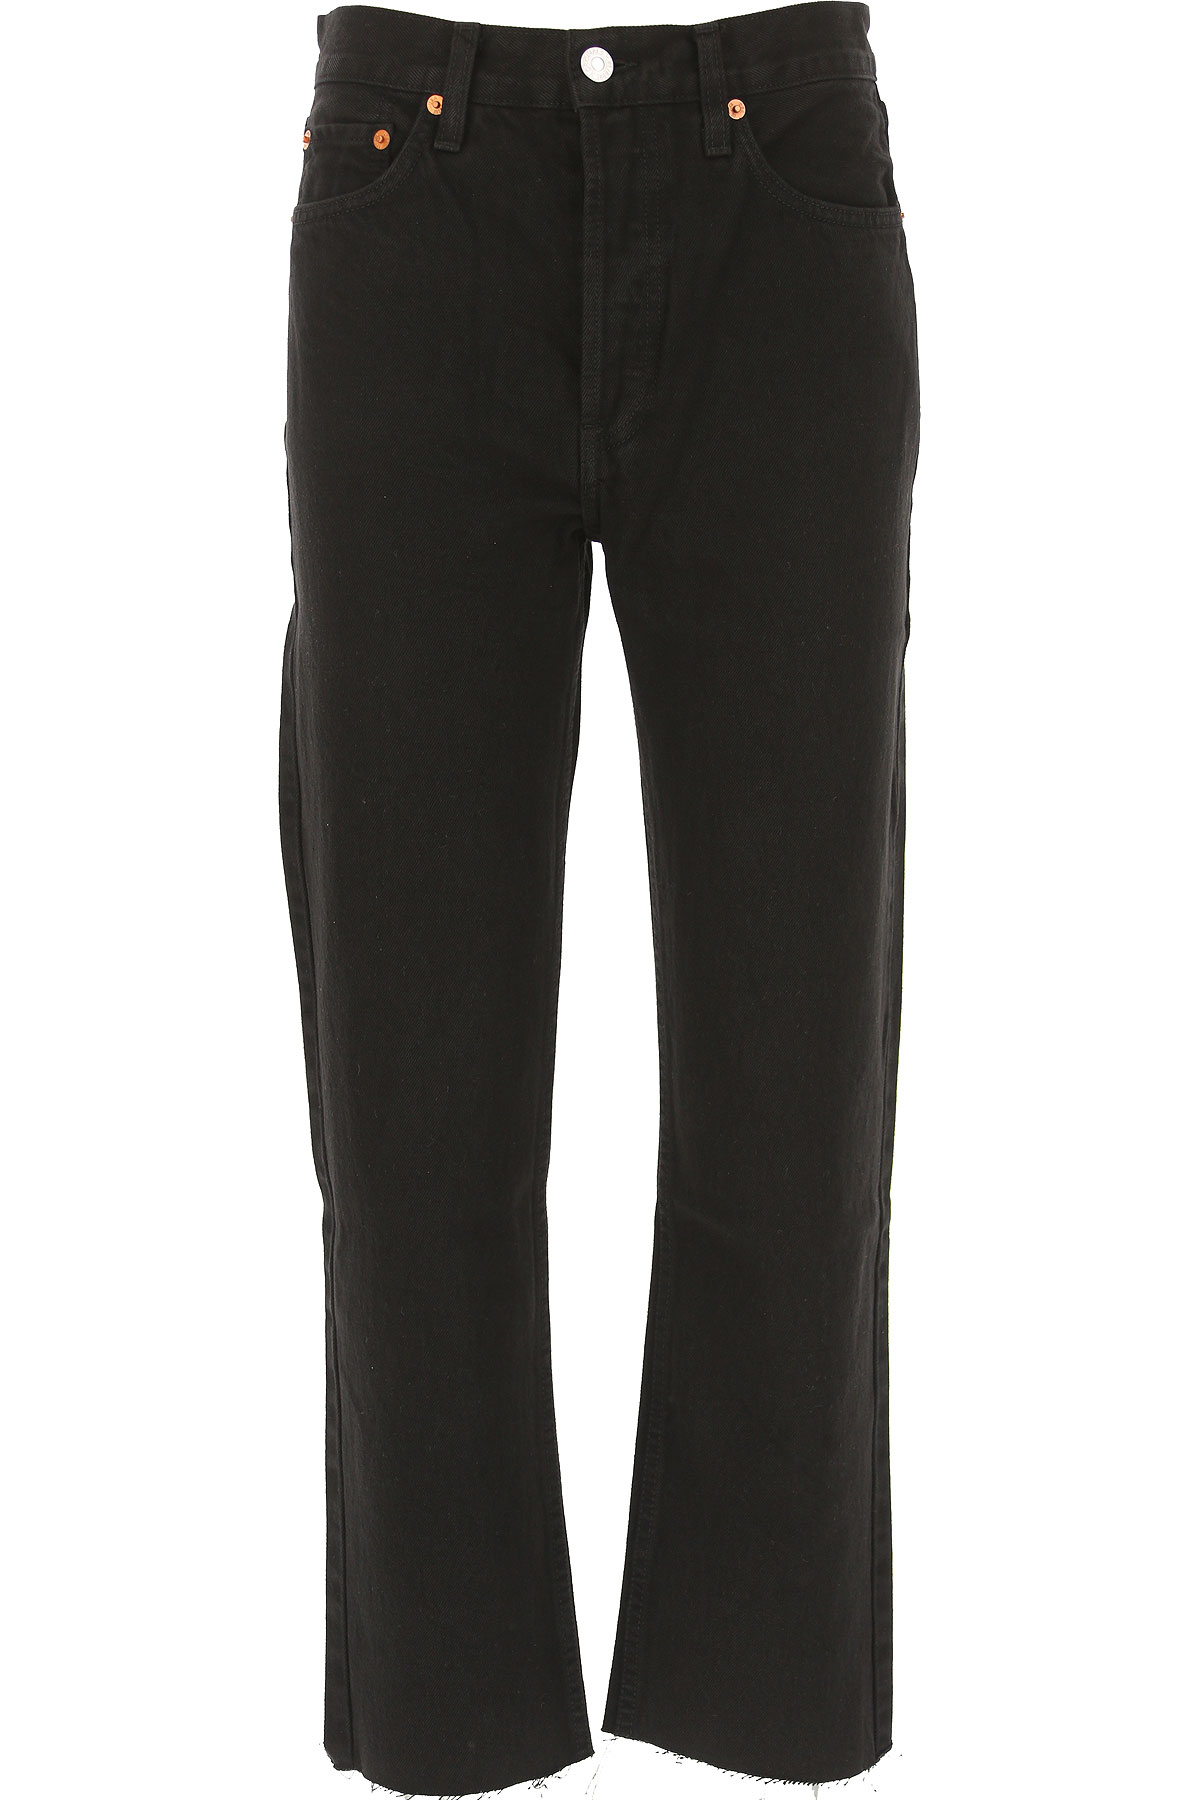 Image of RE/DONE Jeans, Black, Cotton, 2017, 25 26 27 28 29